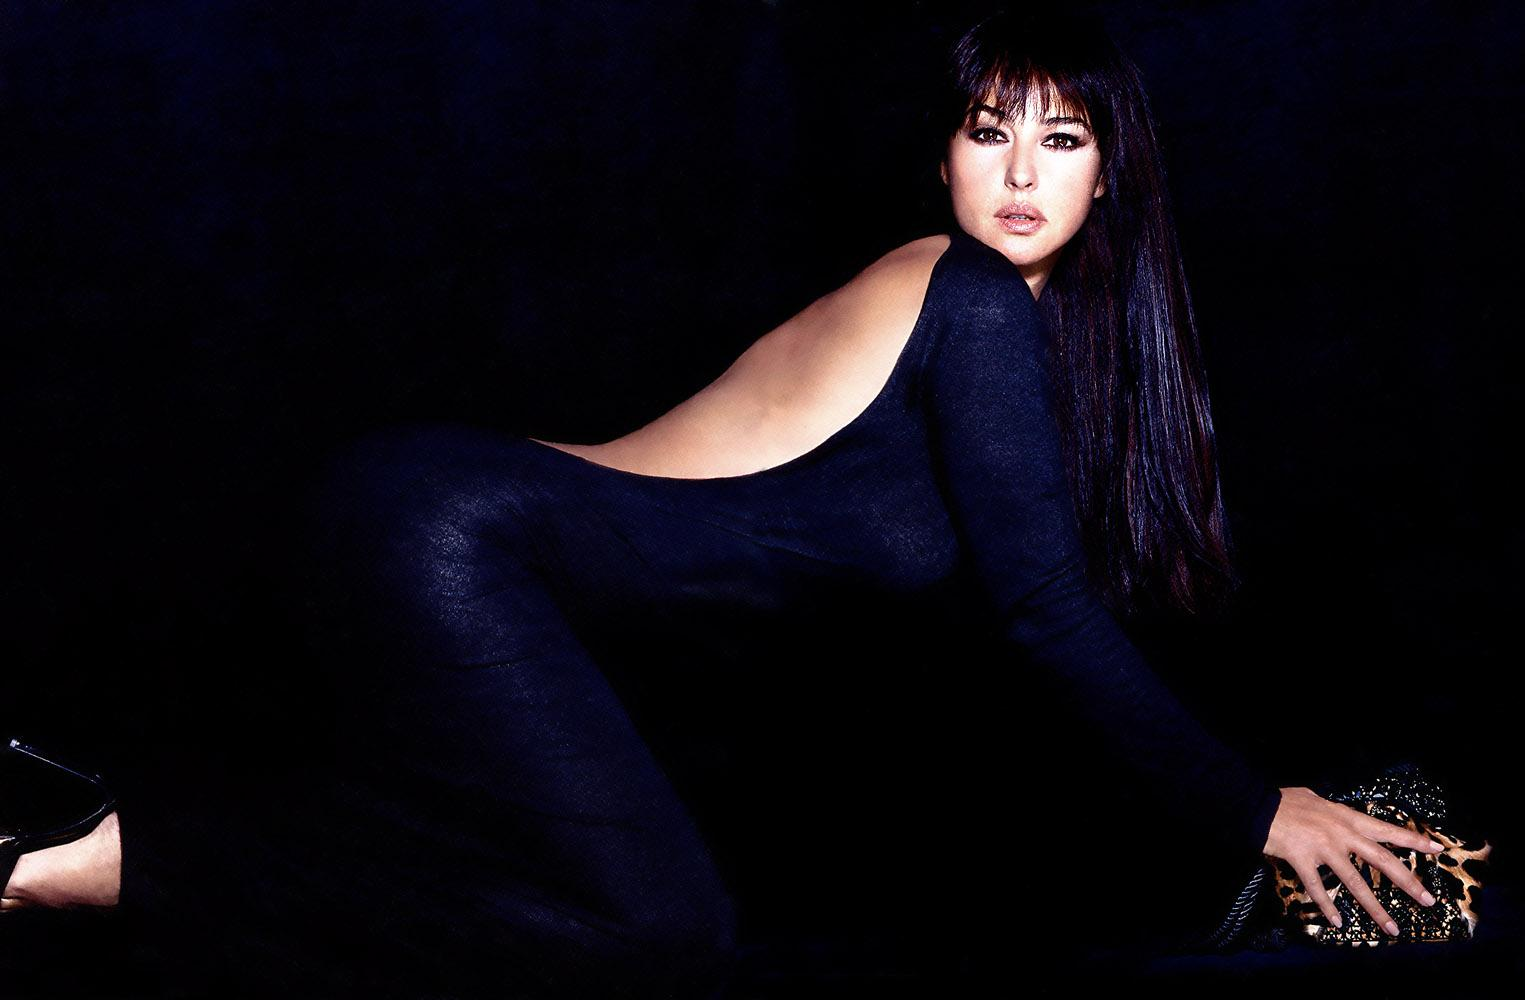 monica bellucci hot best quality hd pictures - all hd wallpapers